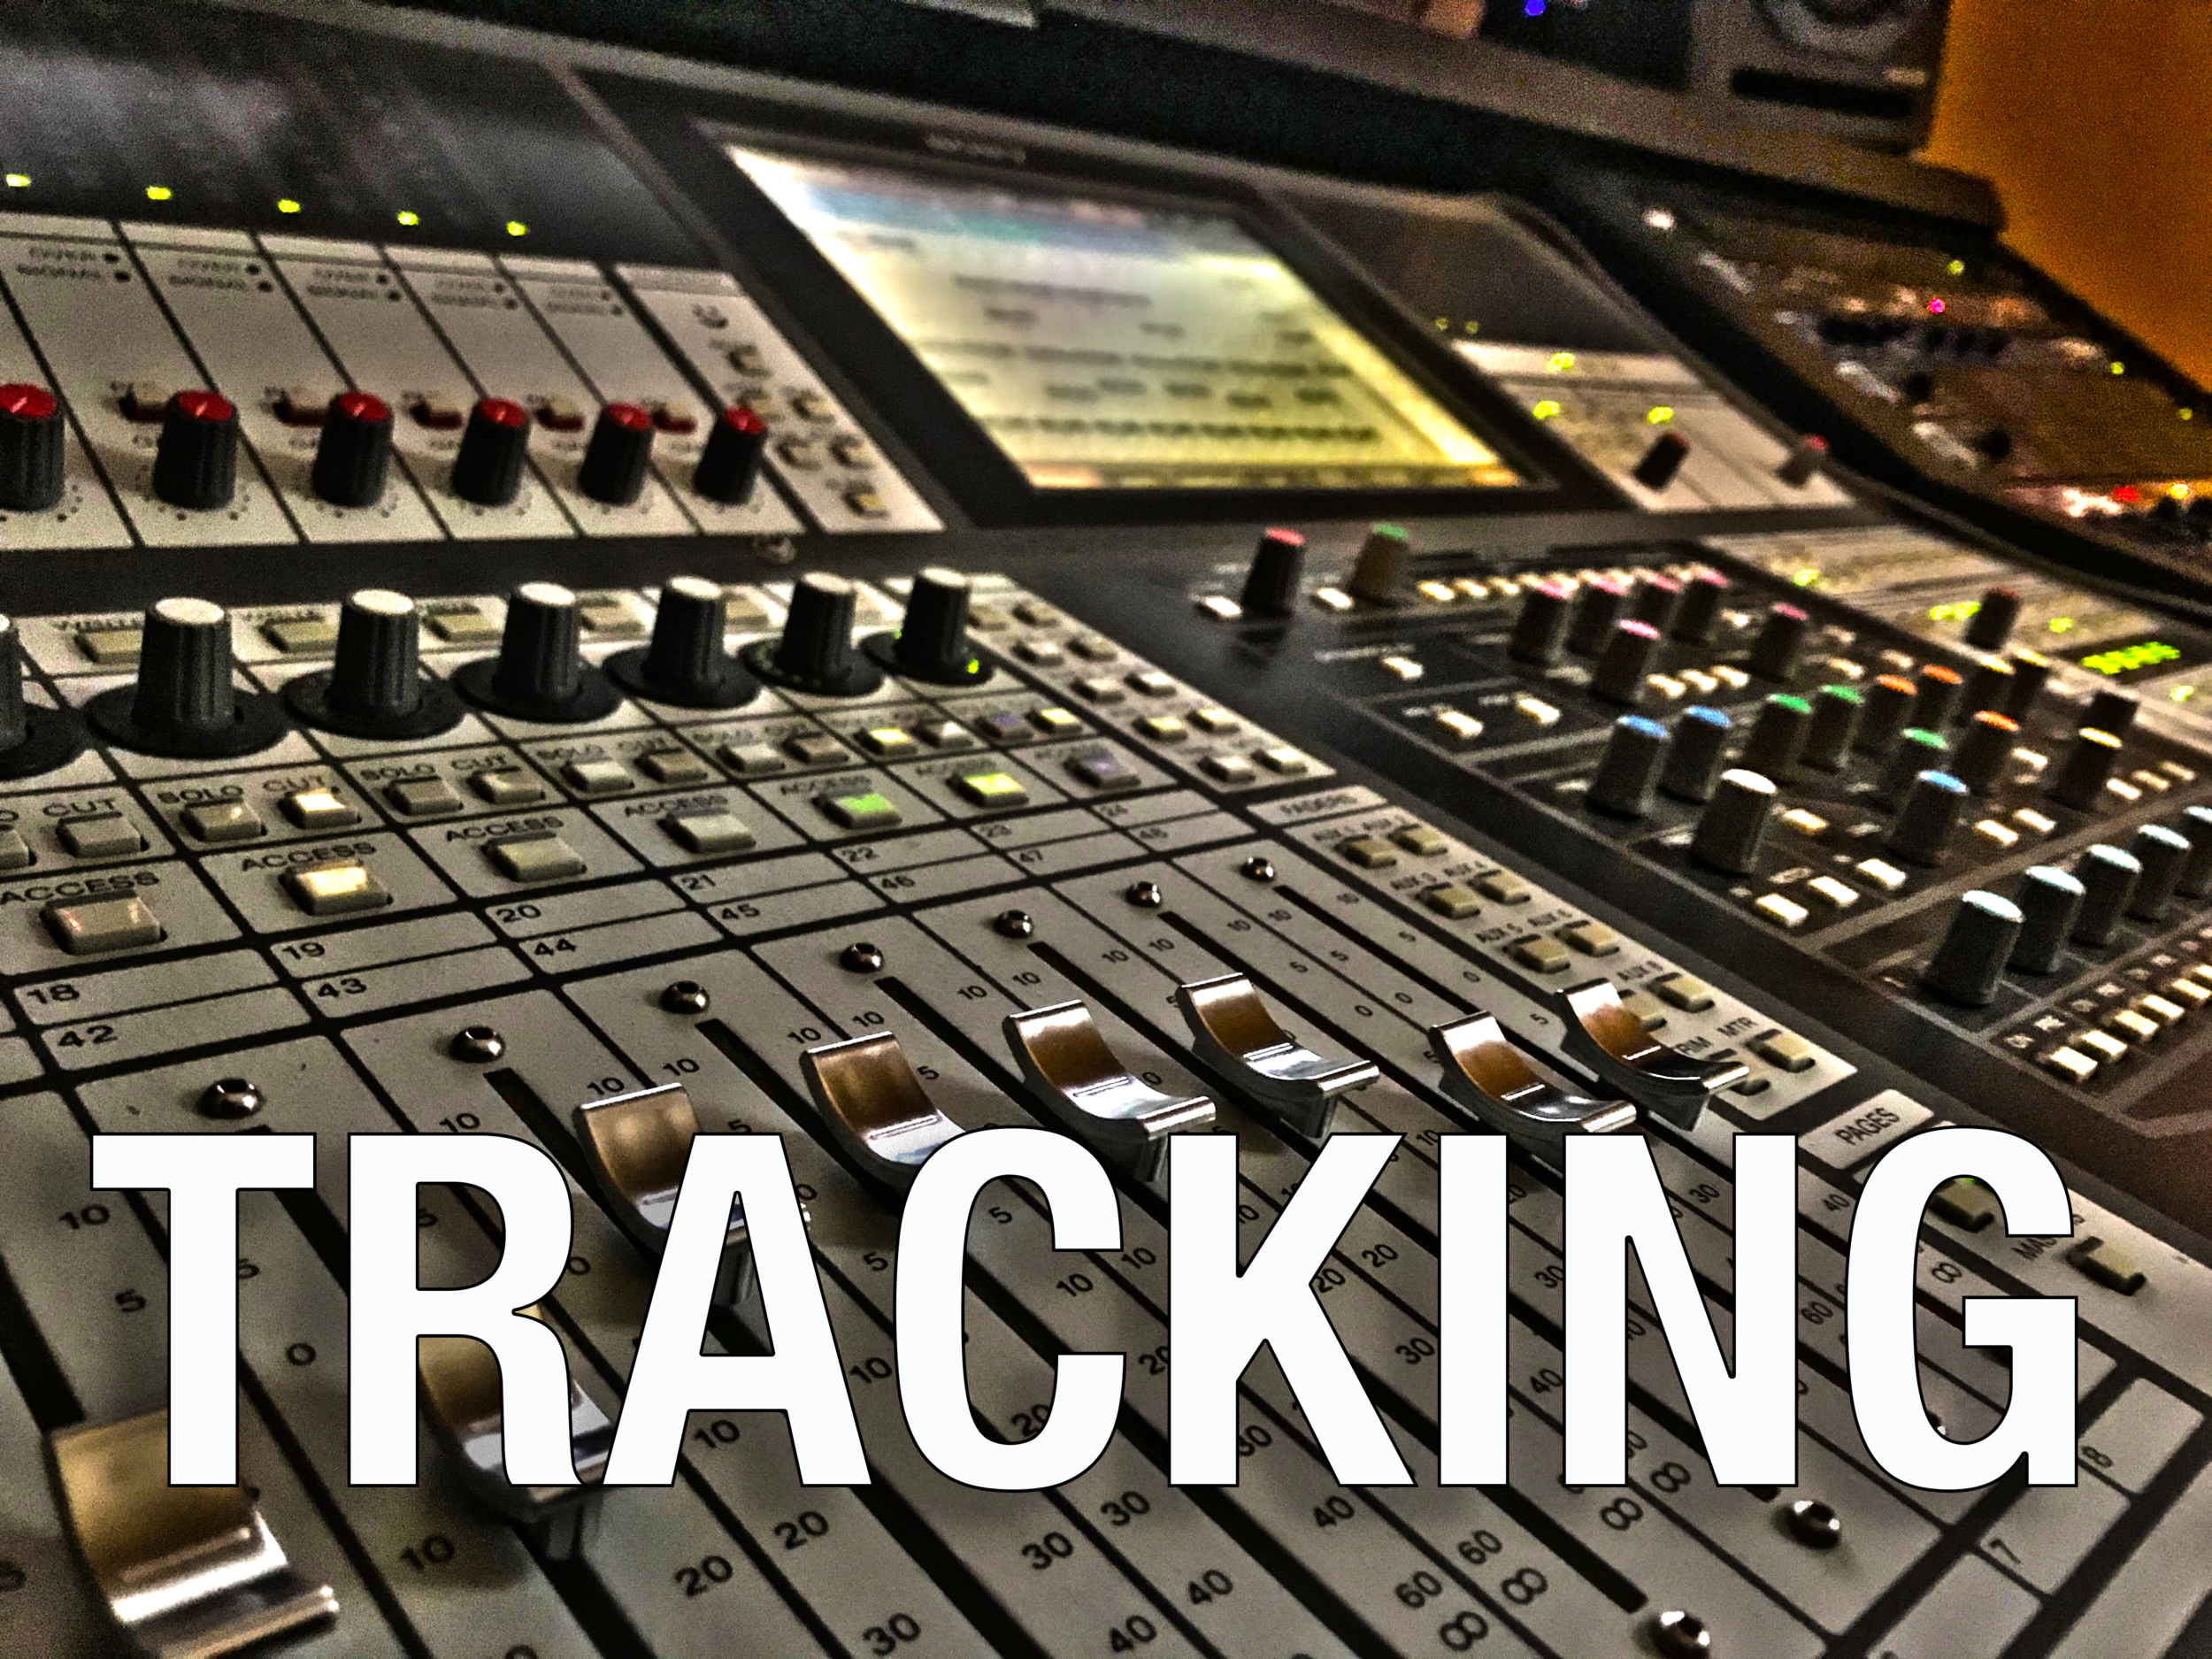 - At the heart of Hub City Recording is the Sony DMX-R100 Digital Recording Console. Known as the